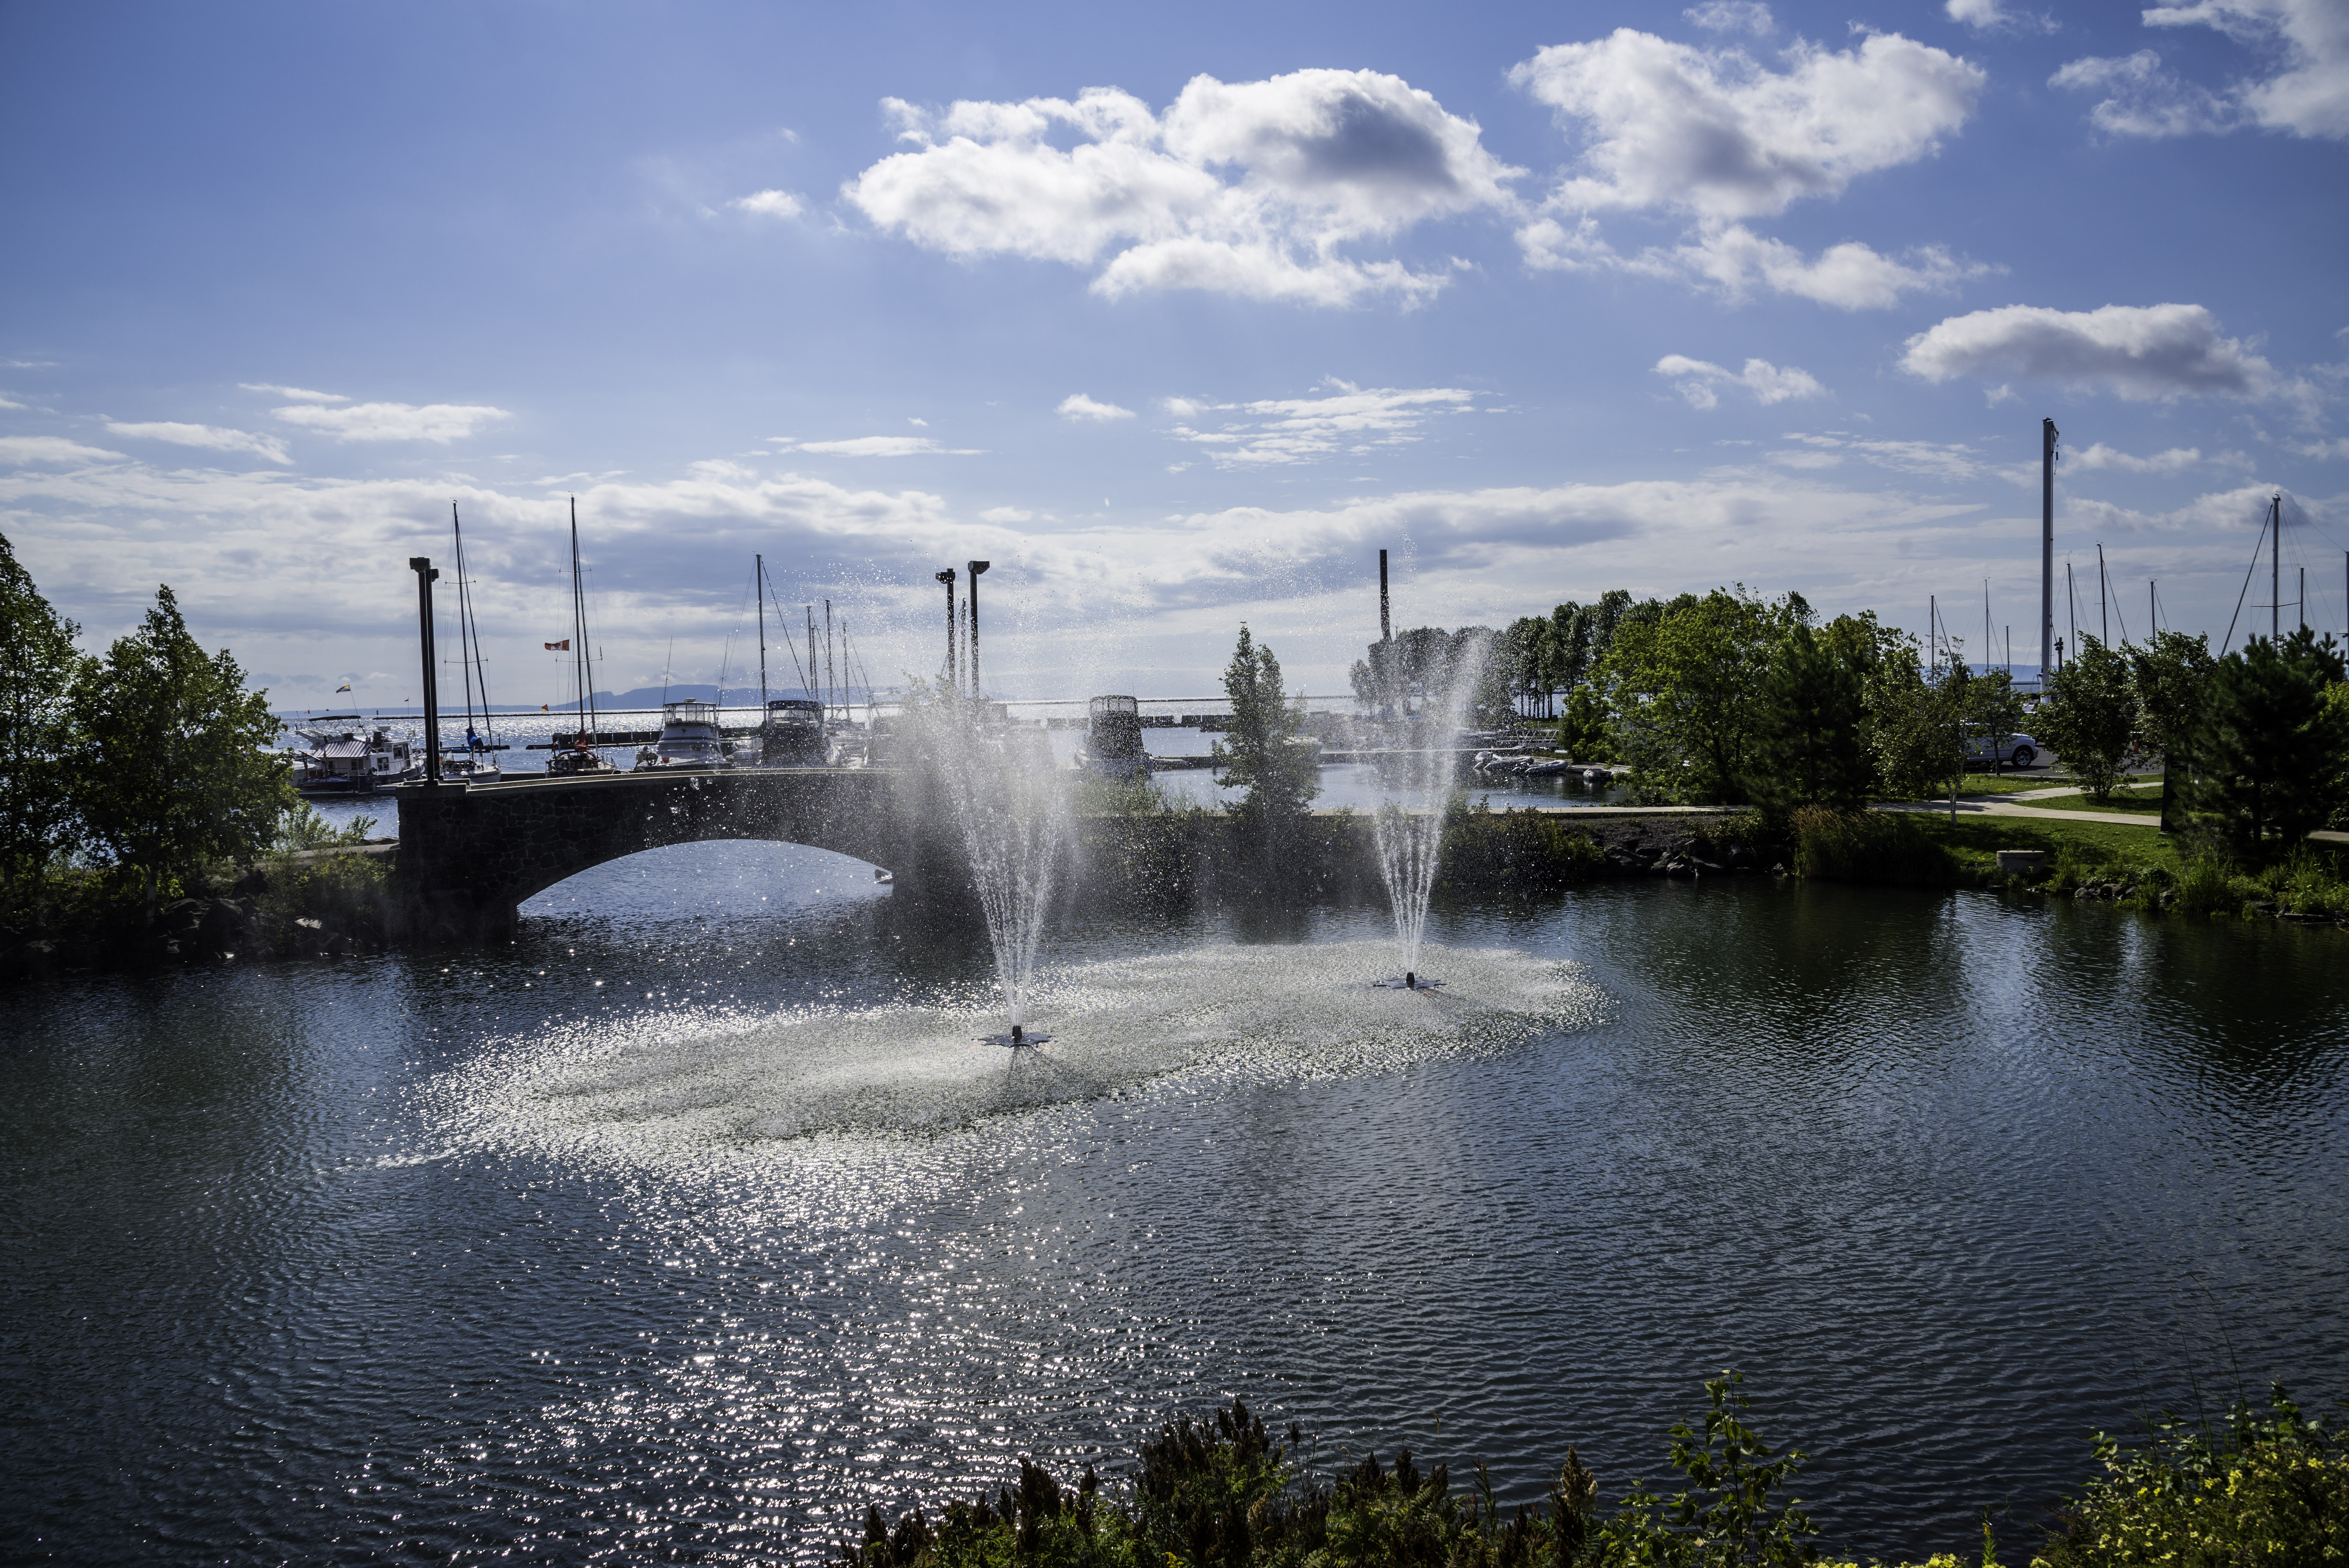 Water fountains canada - Water Fountains In The Water Garden In Thunder Bay Ontario Canada